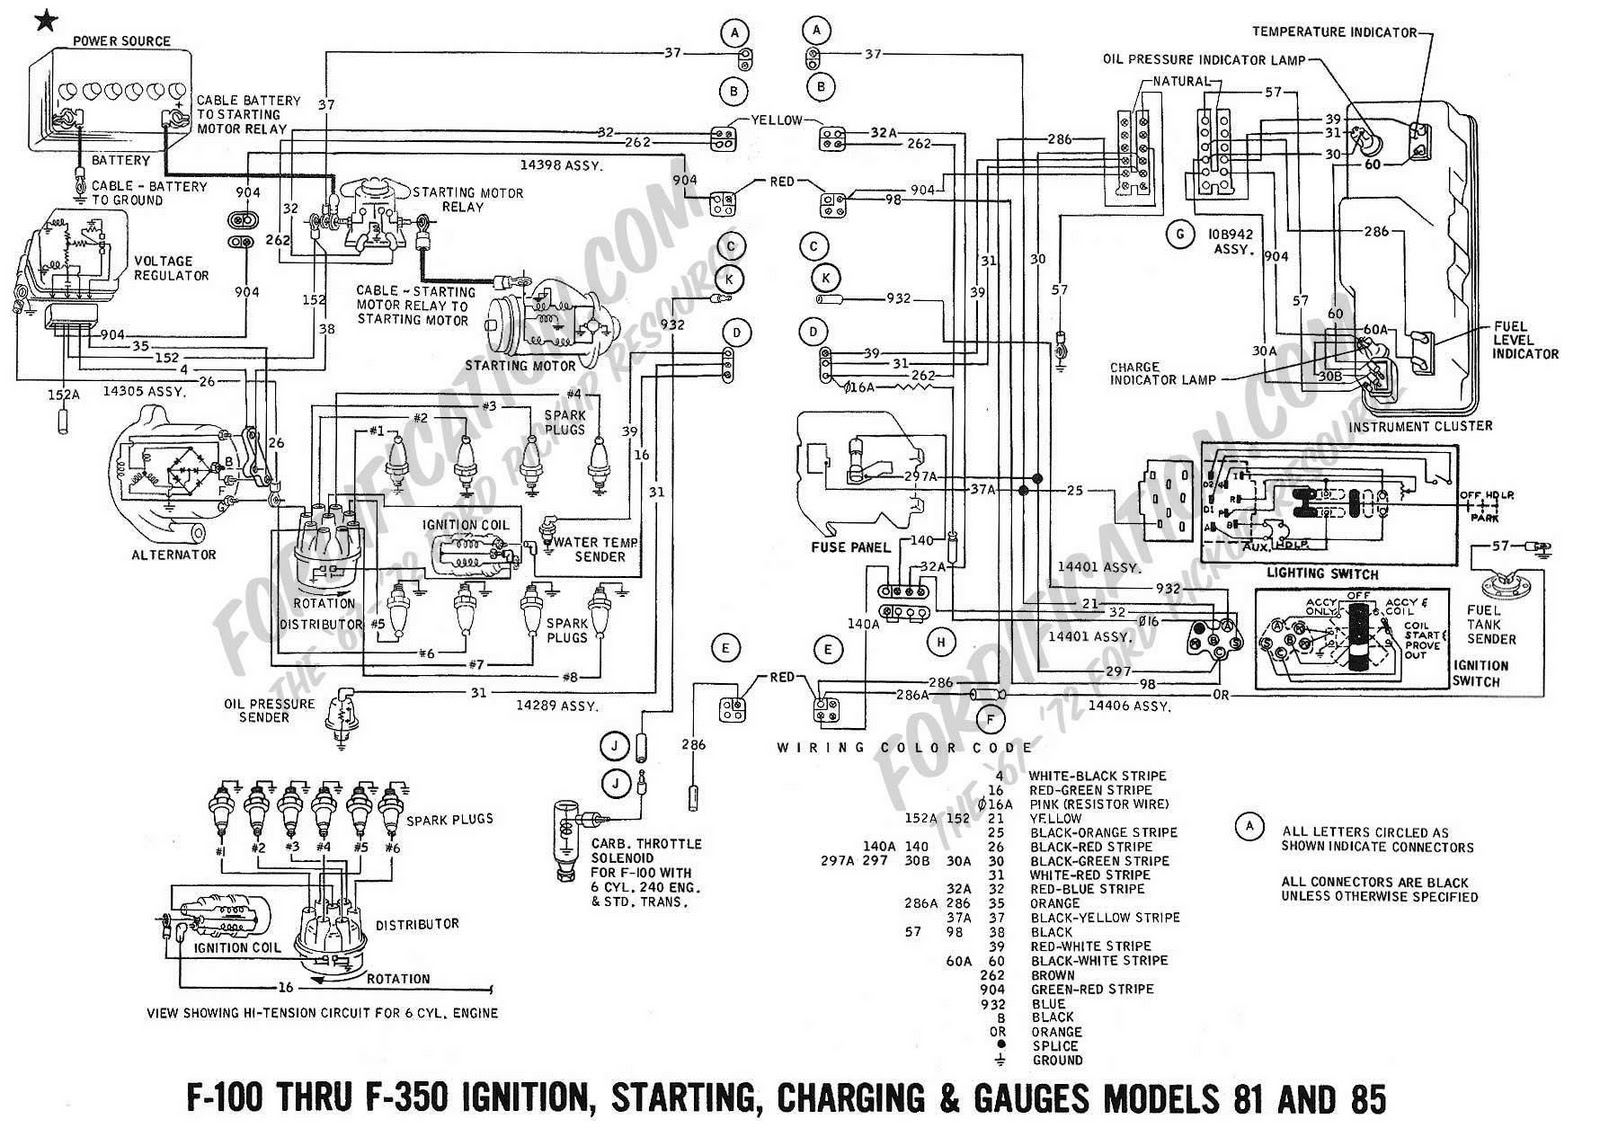 ford torino ignition wiring diagrams wiring diagram updateford torino ignition wiring diagrams wiring diagram ford ignition relay 1970 ford torino ignition wiring diagram